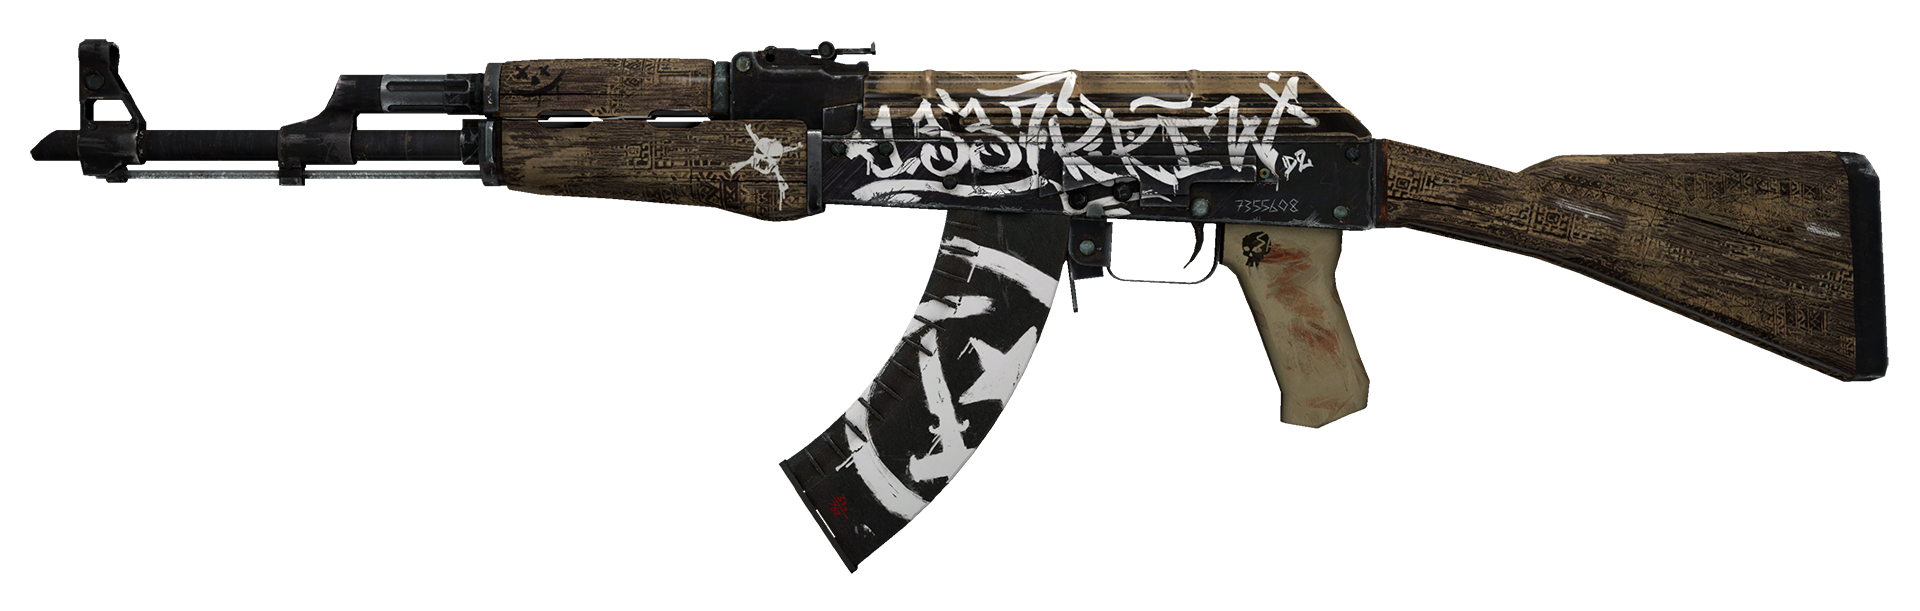 AK-47 Wasteland Rebel Large Rendering